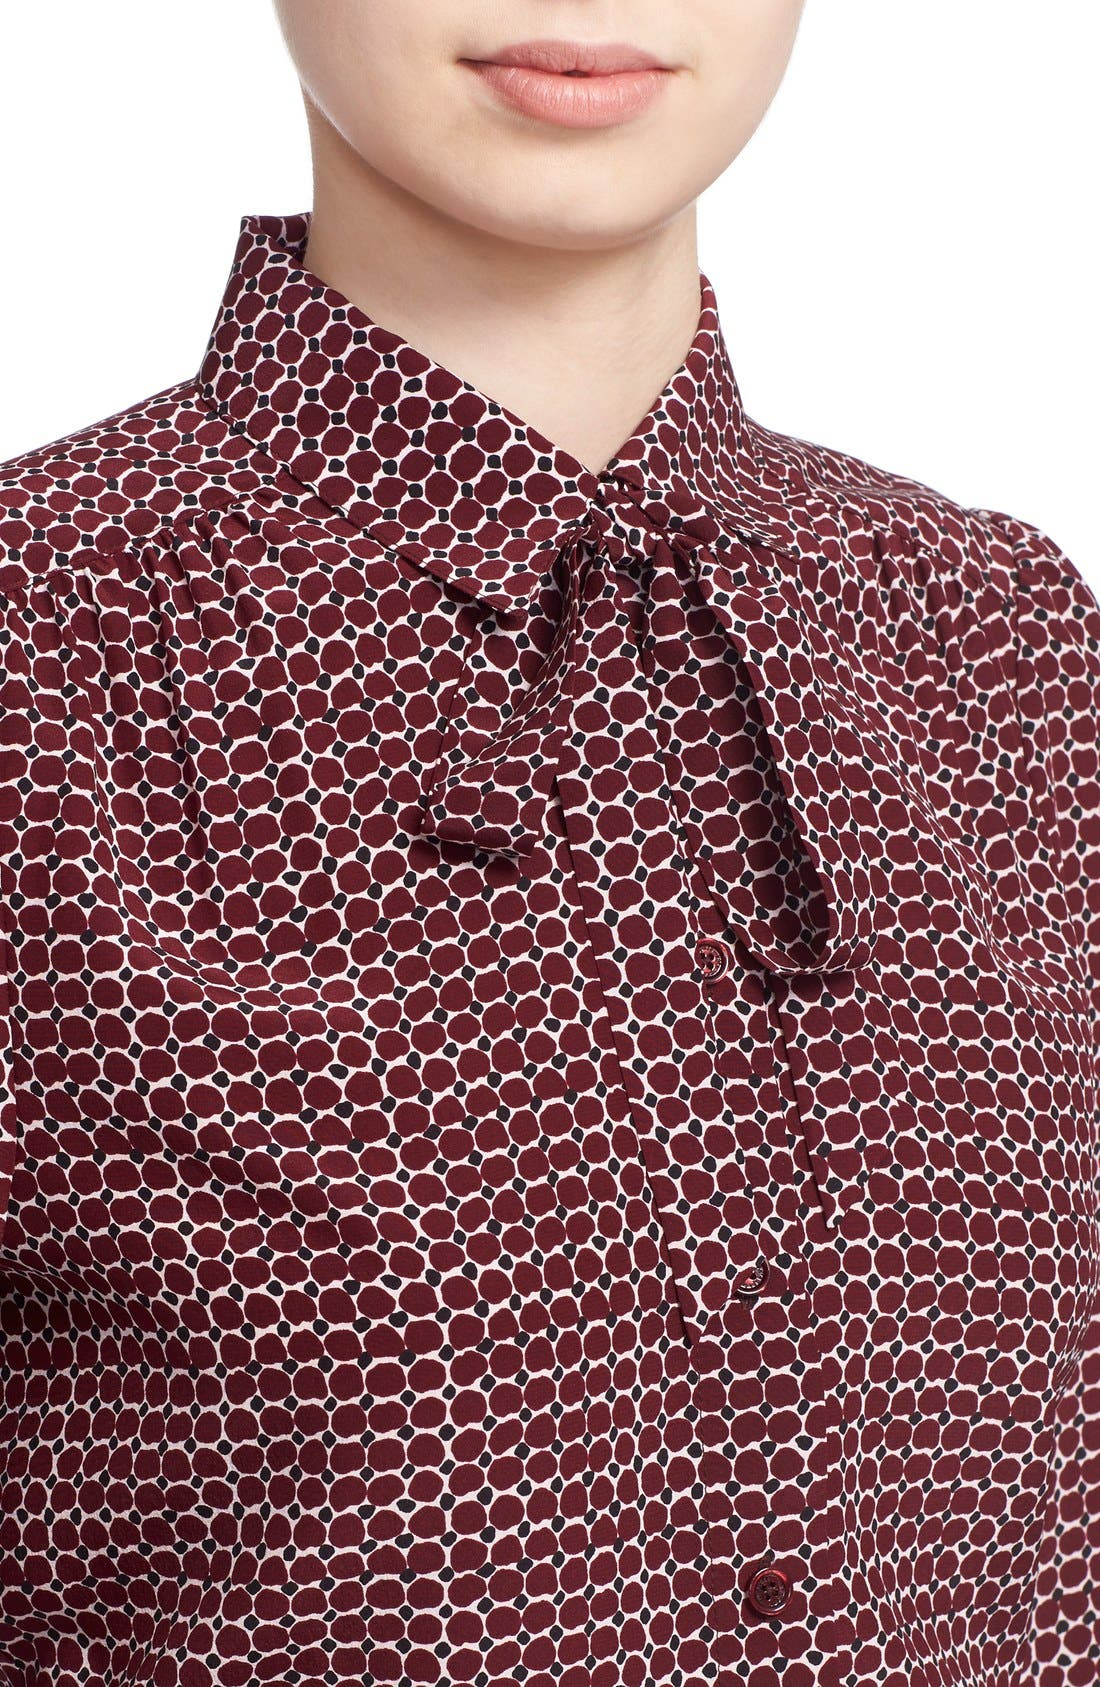 Alternate Image 4  - kate spade new york 'parker dot' print silk bow blouse